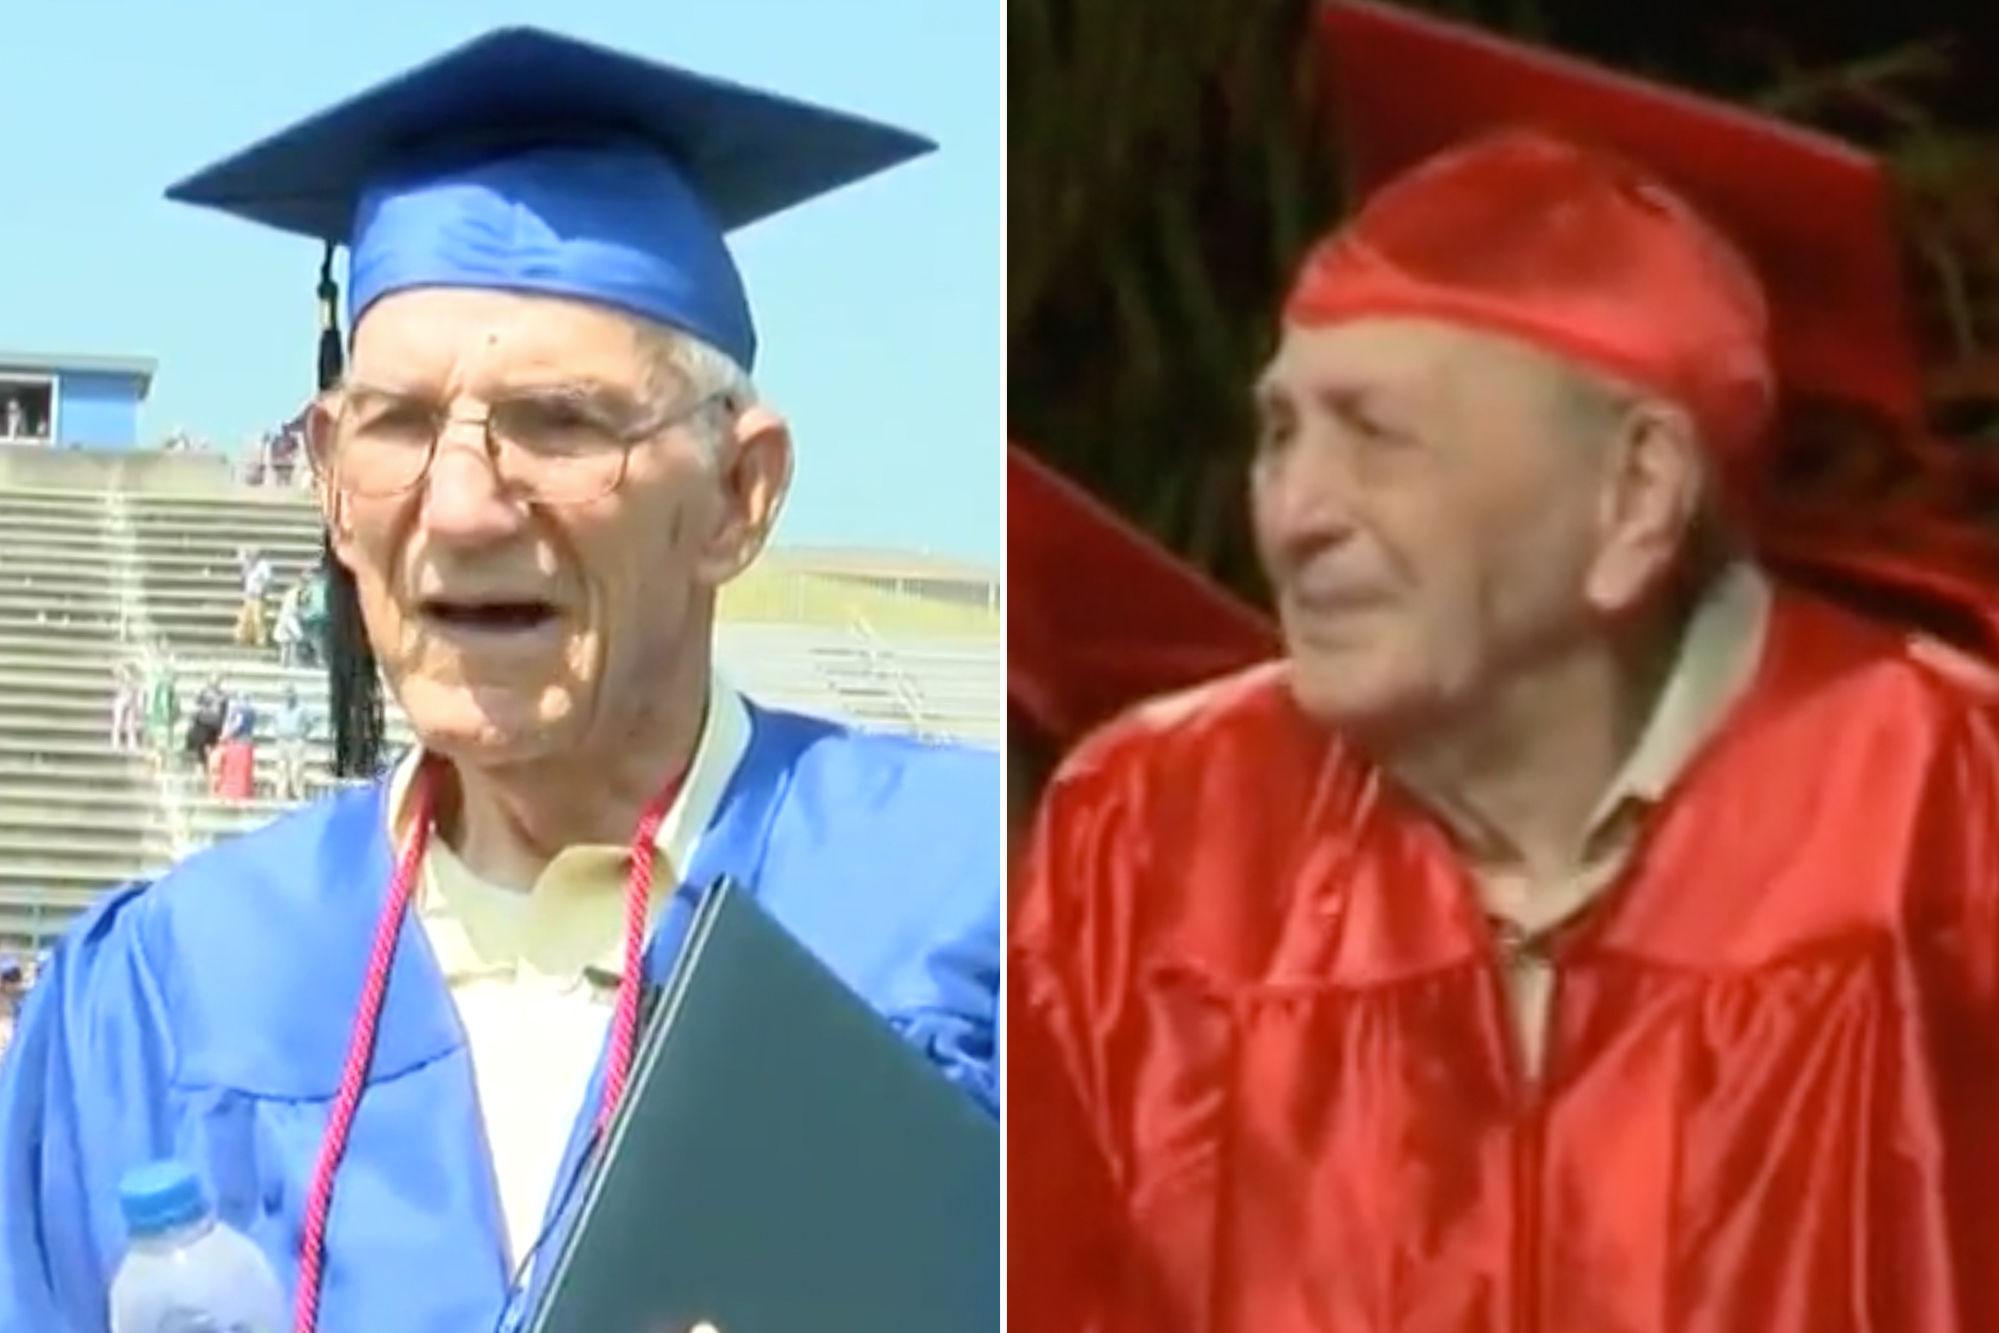 World War II Veteran, 95, and Korean War Veteran, 85, Walk During Their High School Graduation